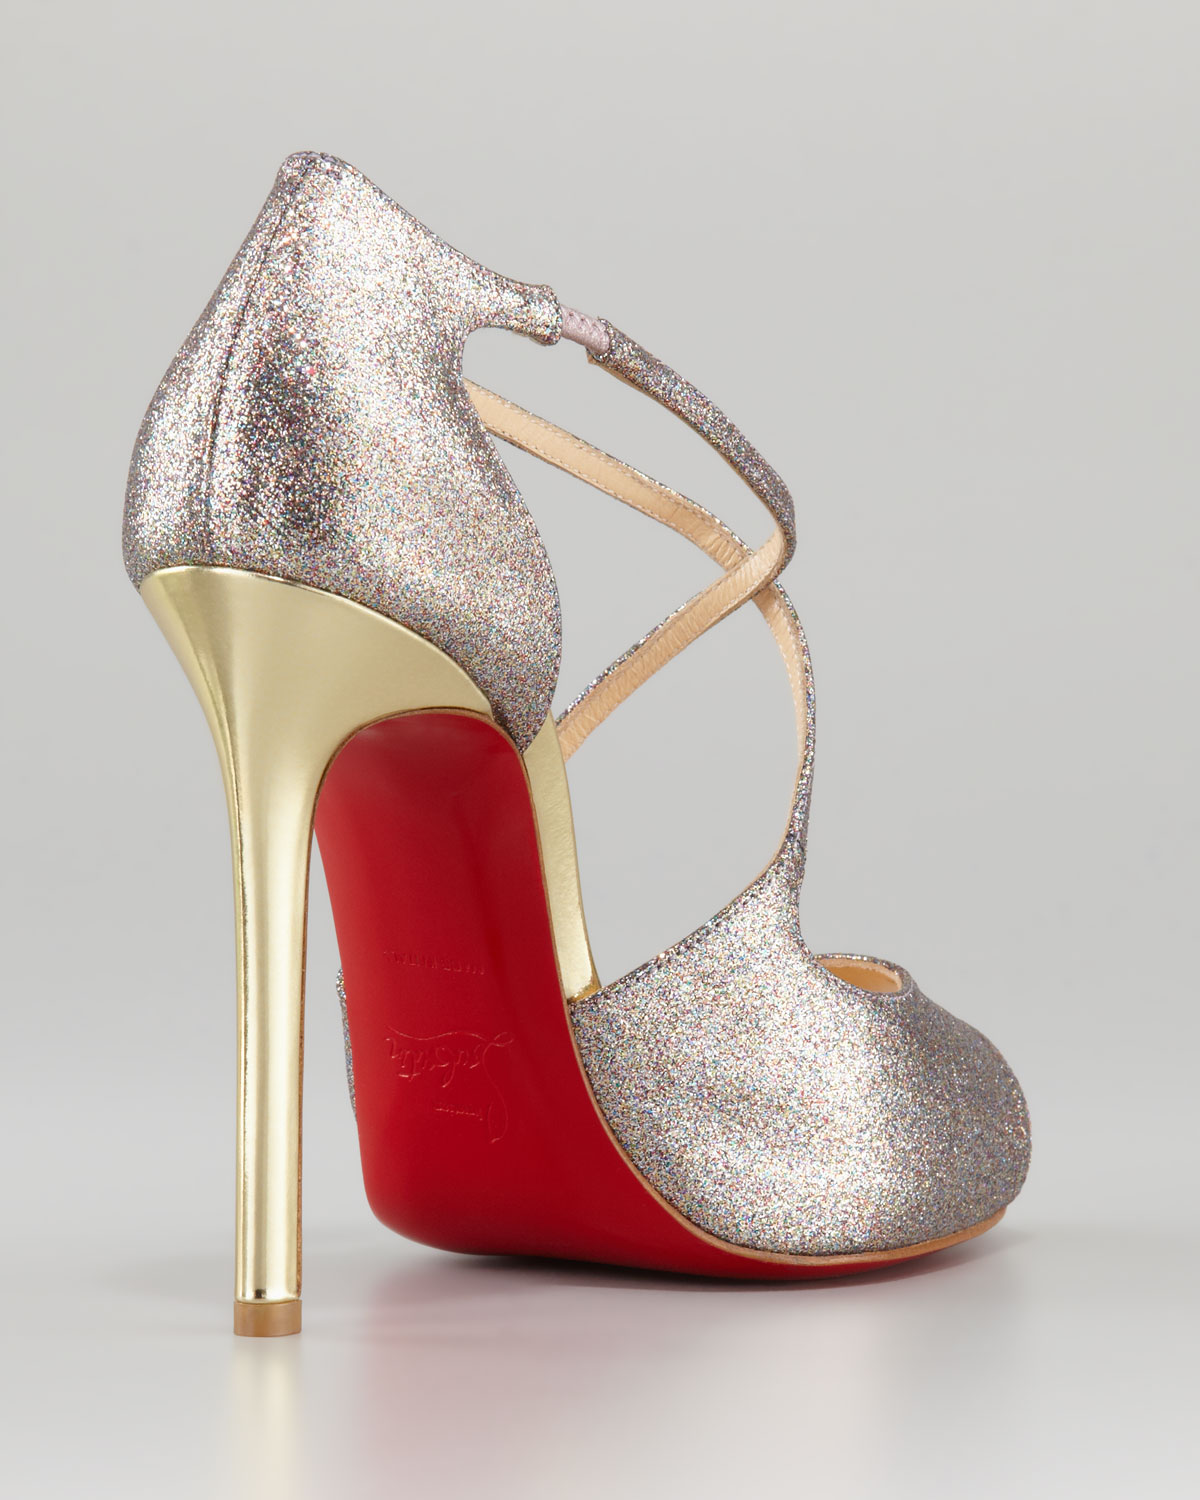 red spiked shoes - Christian louboutin Wrap Glitter Peeptoe Red Sole Pump in Gold ...